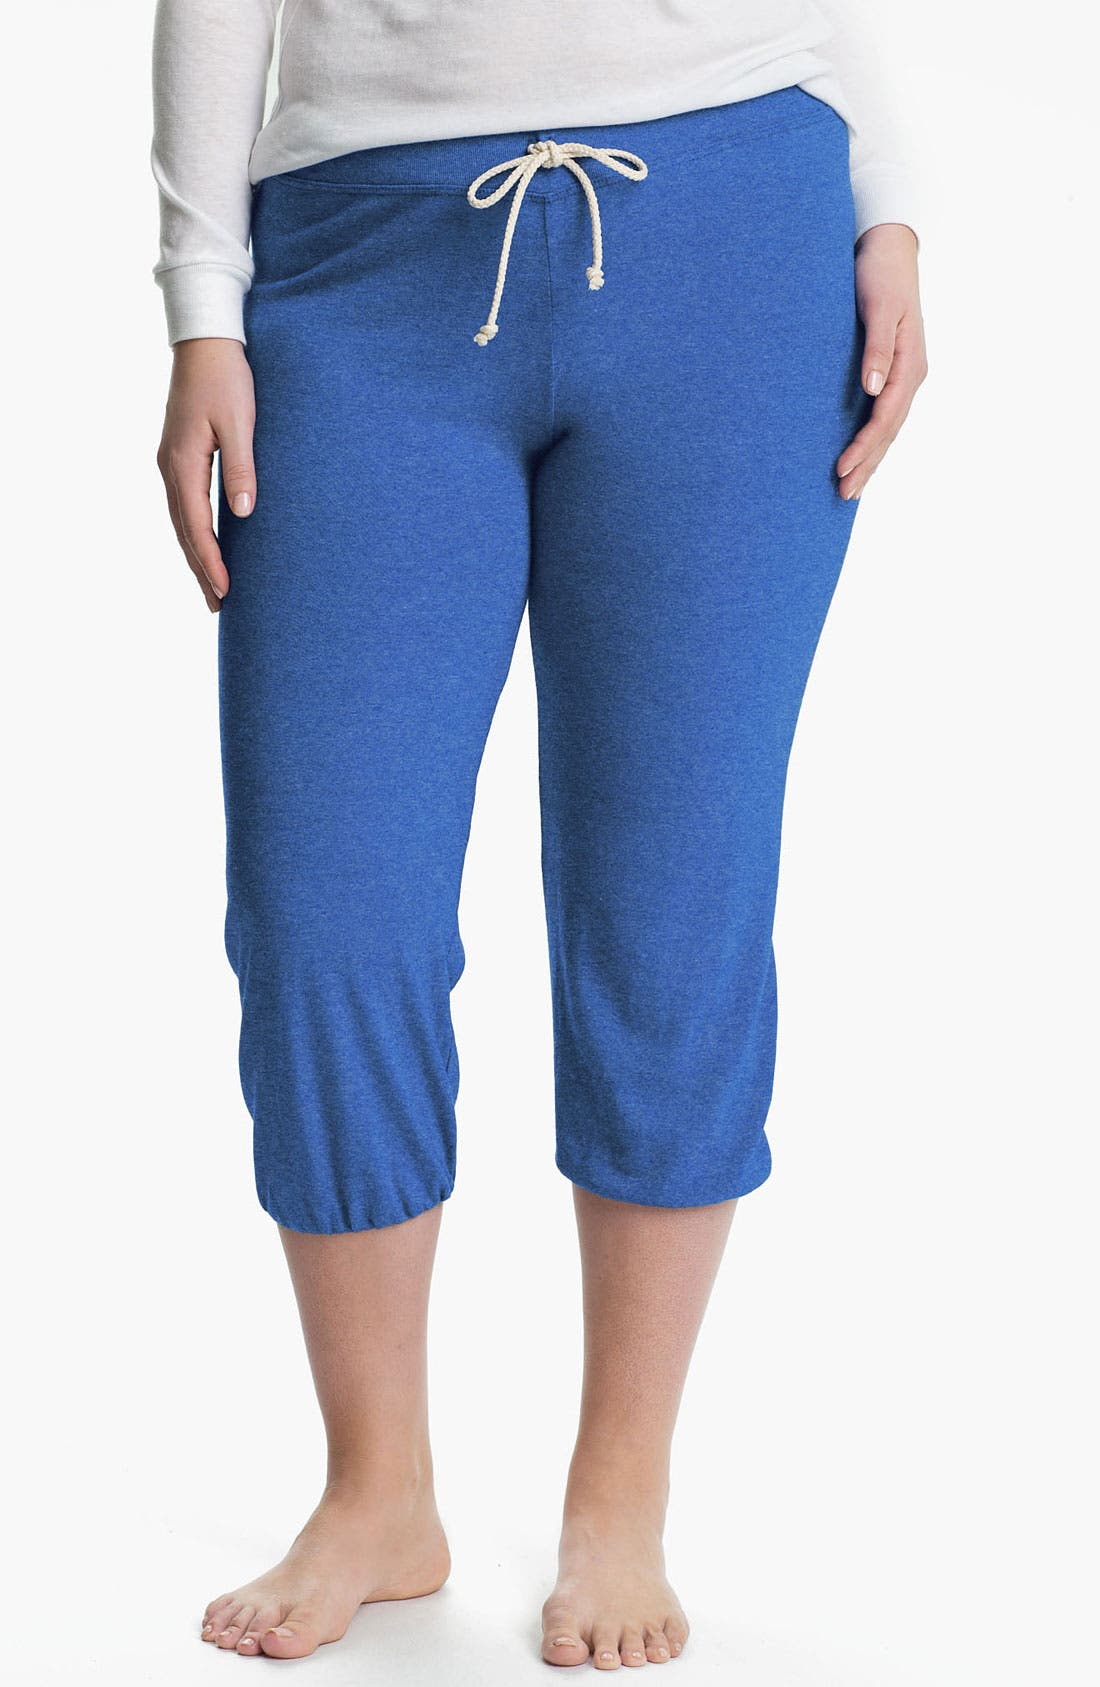 Main Image - Nation LTD 'Medora' Capri Sweatpants (Plus)